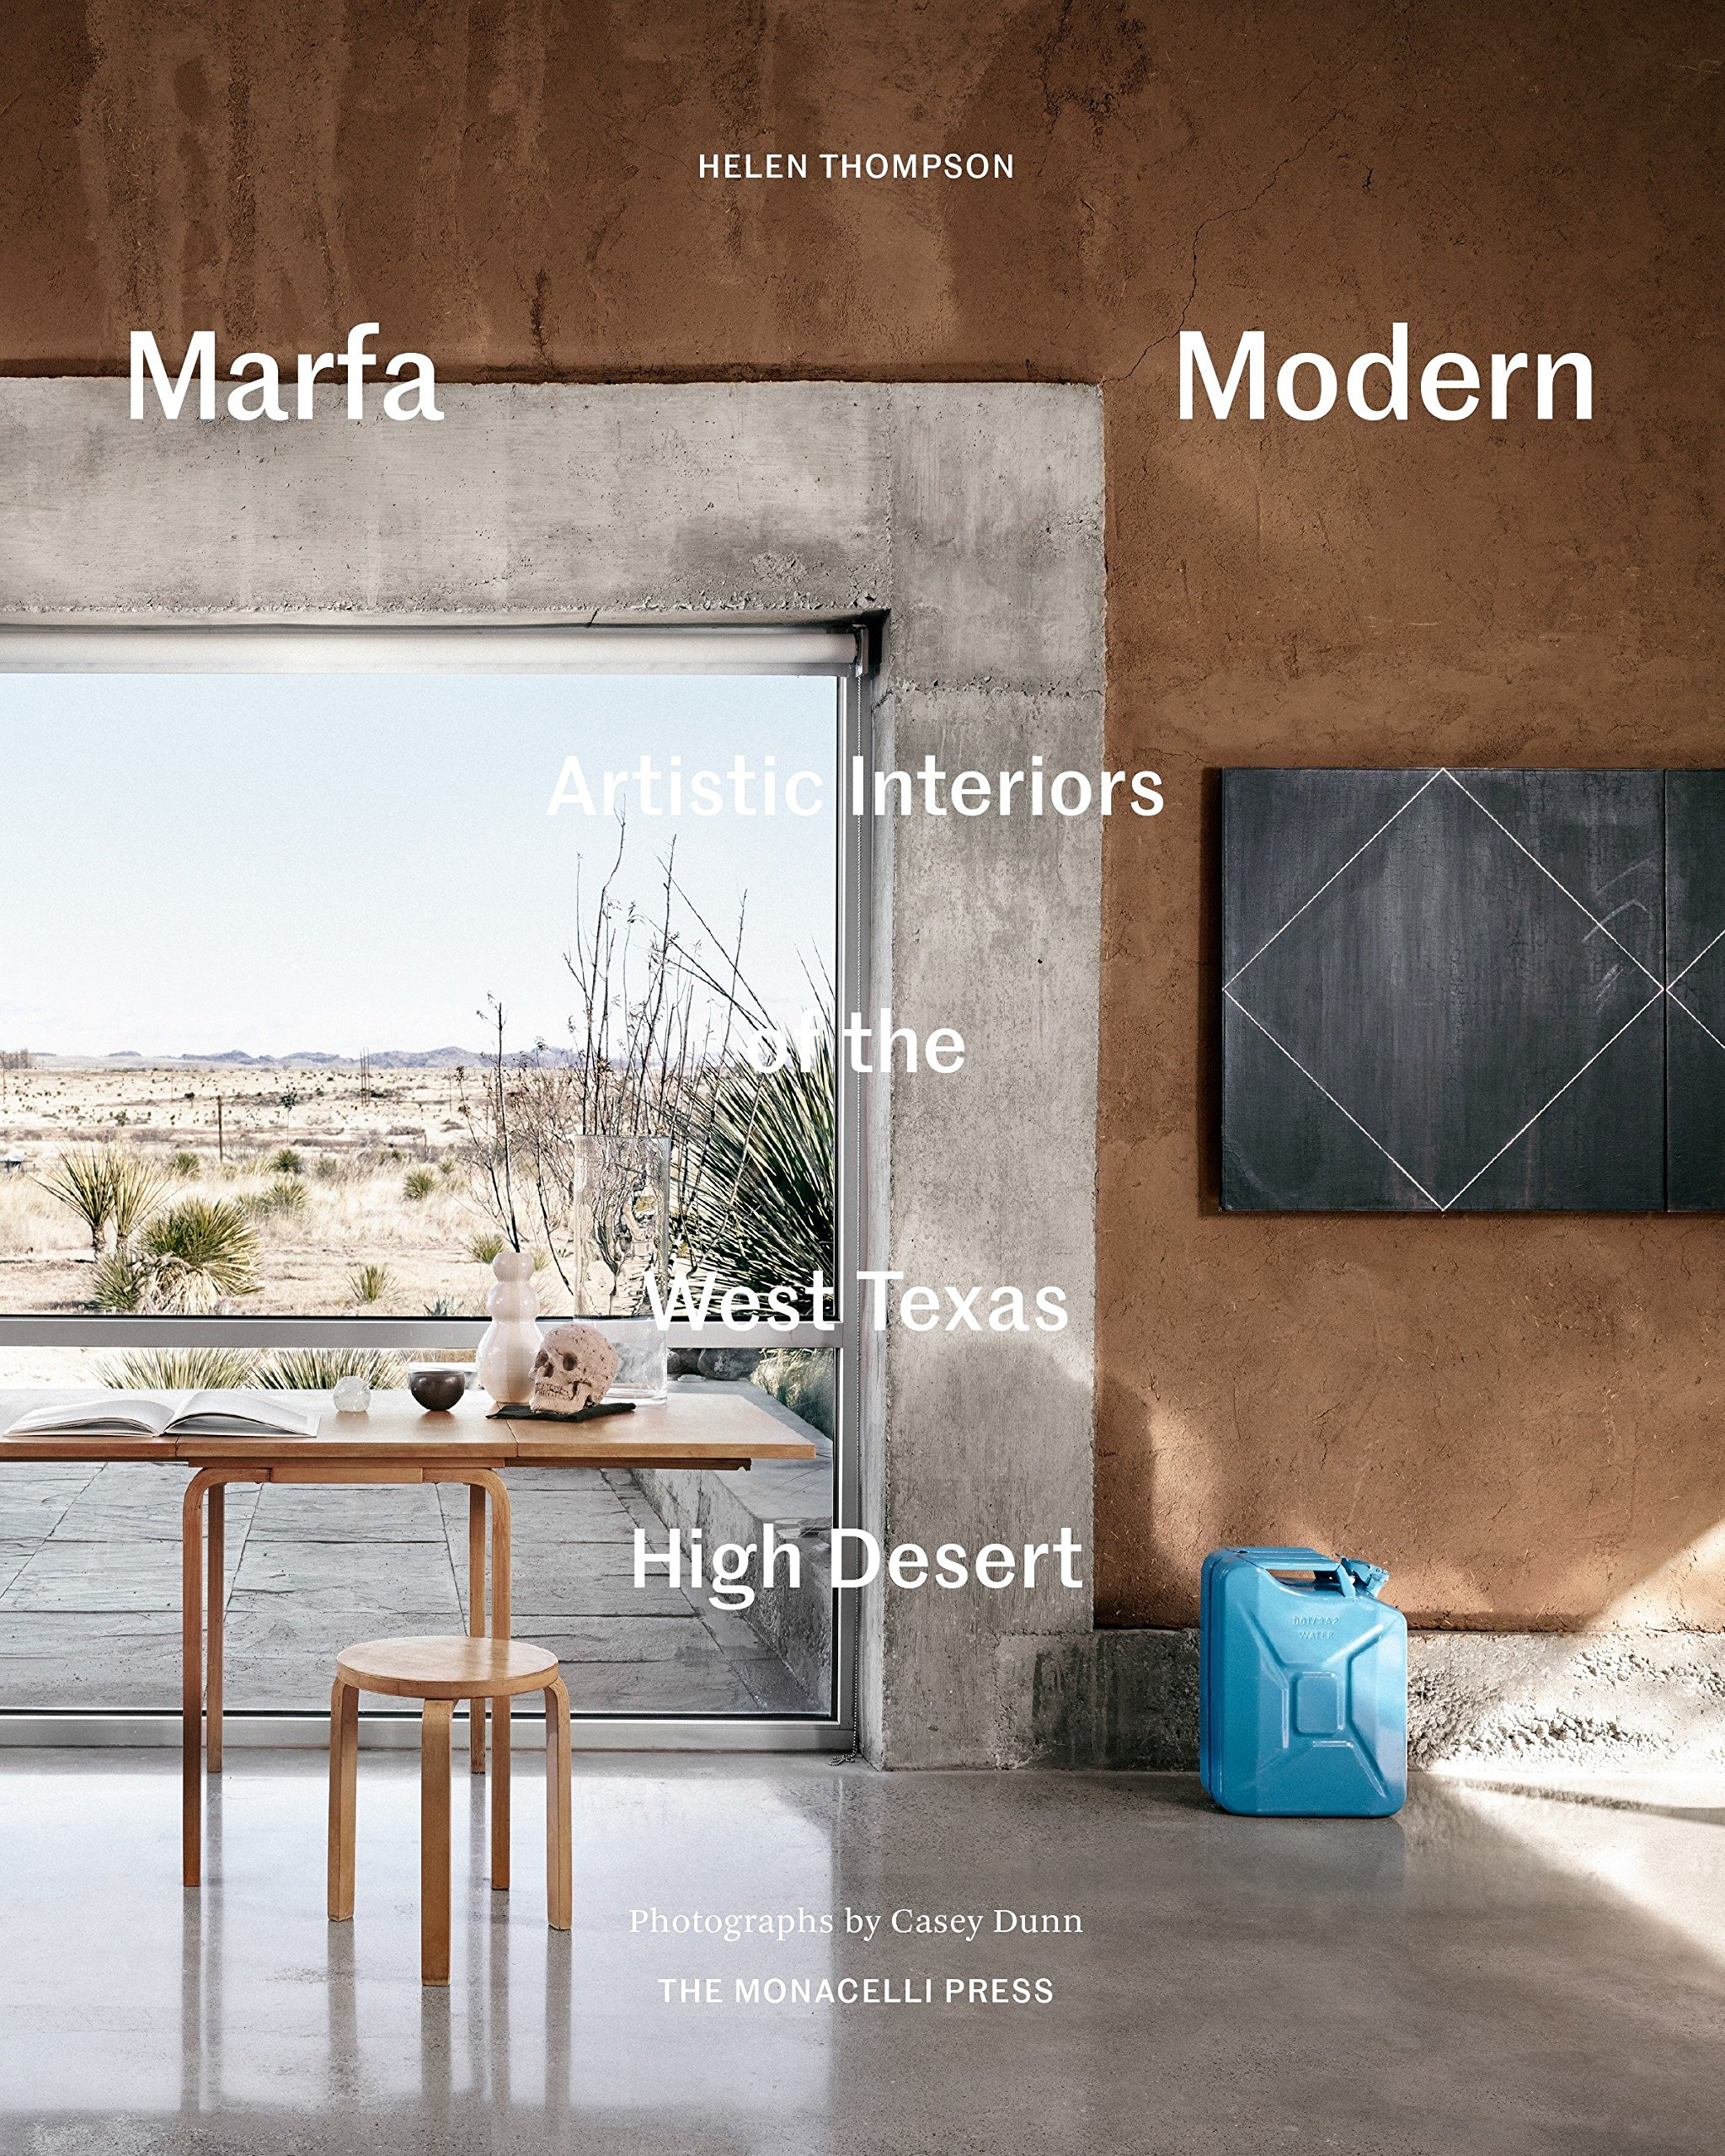 Amazon.com: Marfa Modern: Artistic Interiors Of The West Texas High Desert  (9781580934732): Helen Thompson, Casey Dunn: Books